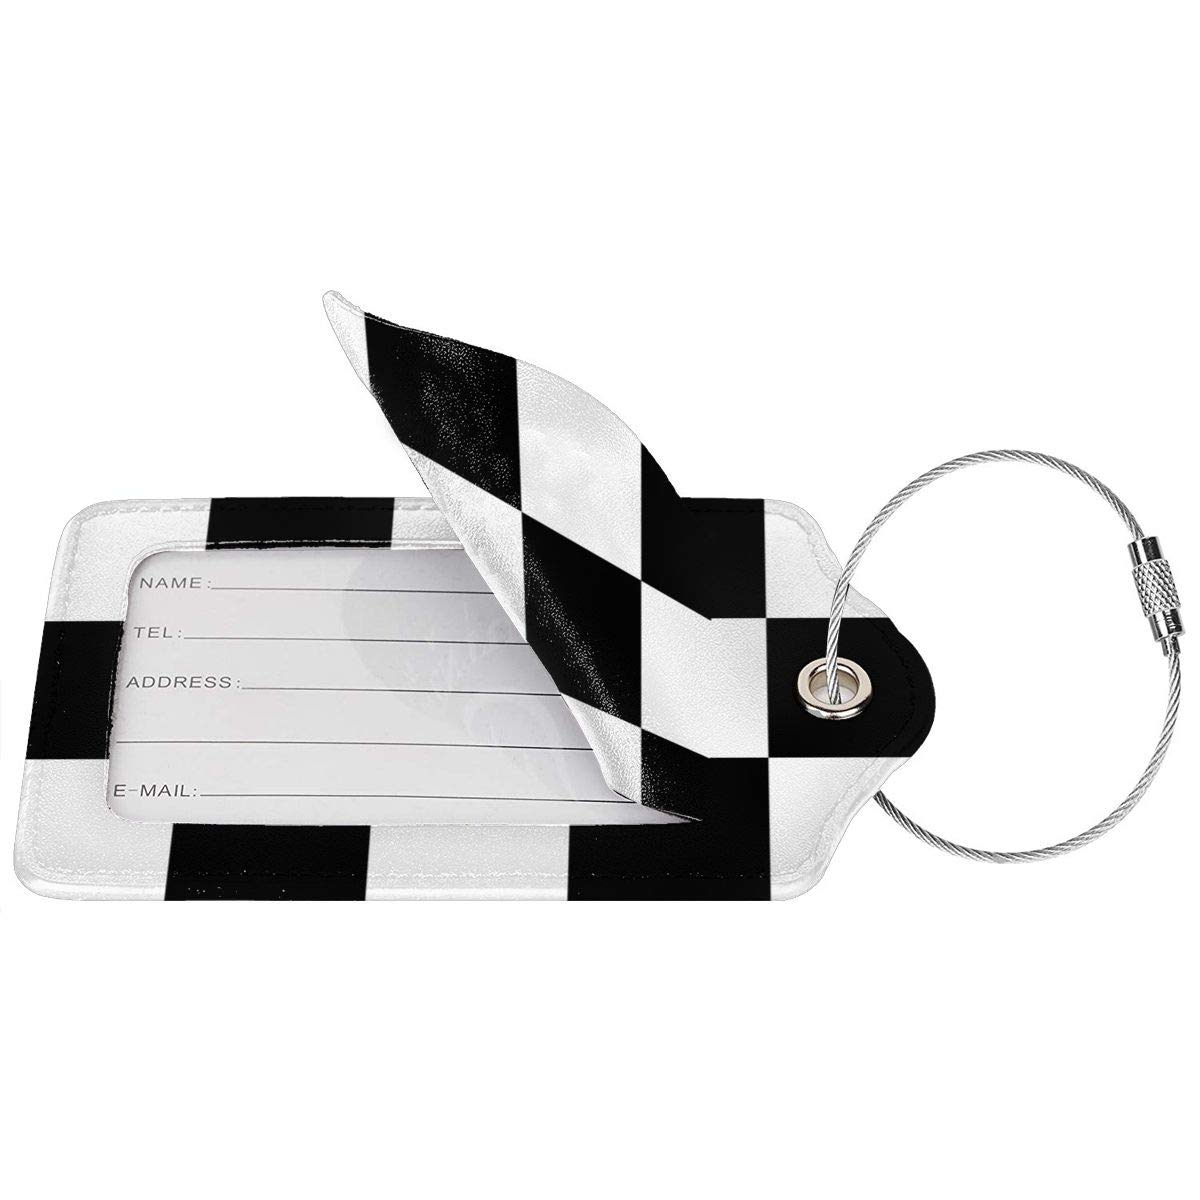 GoldK Checkered Flag Leather Luggage Tags Baggage Bag Instrument Tag Travel Labels Accessories with Privacy Cover